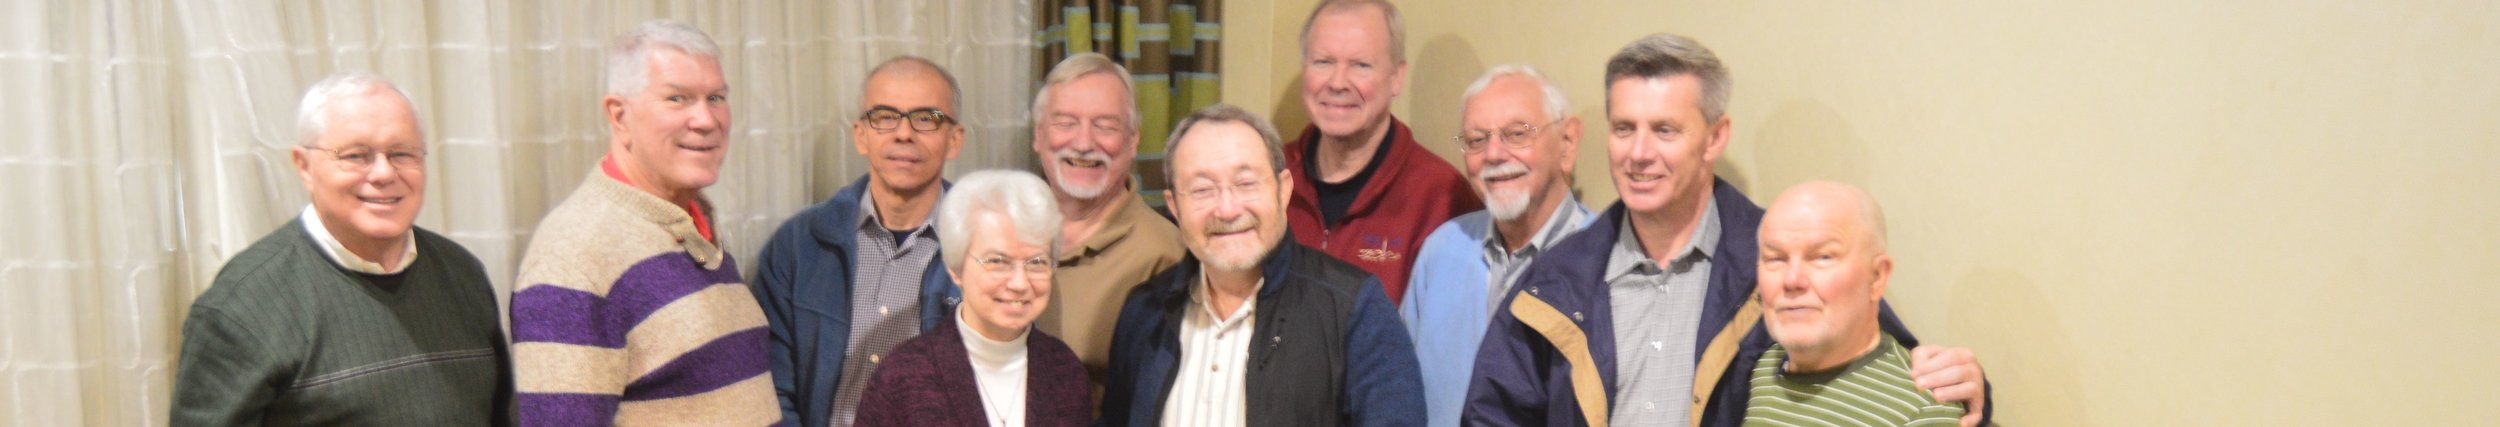 Leadership team members meeting in St. Louis: Peter Daly;  Greg Barras, newly elected vice-chair;  Tulio Ramirez; Sister Jackie Doepker; Lee Bacchi, treasurer;  Kevin Clinton, chair;  Bill Spilly; Louis Arceneaux, CM; Aiden McAleenan;  Bob Bonnot, executive director.   Leadership team members not shown: Jim Kiesel; Clarence Williams, CPpS.